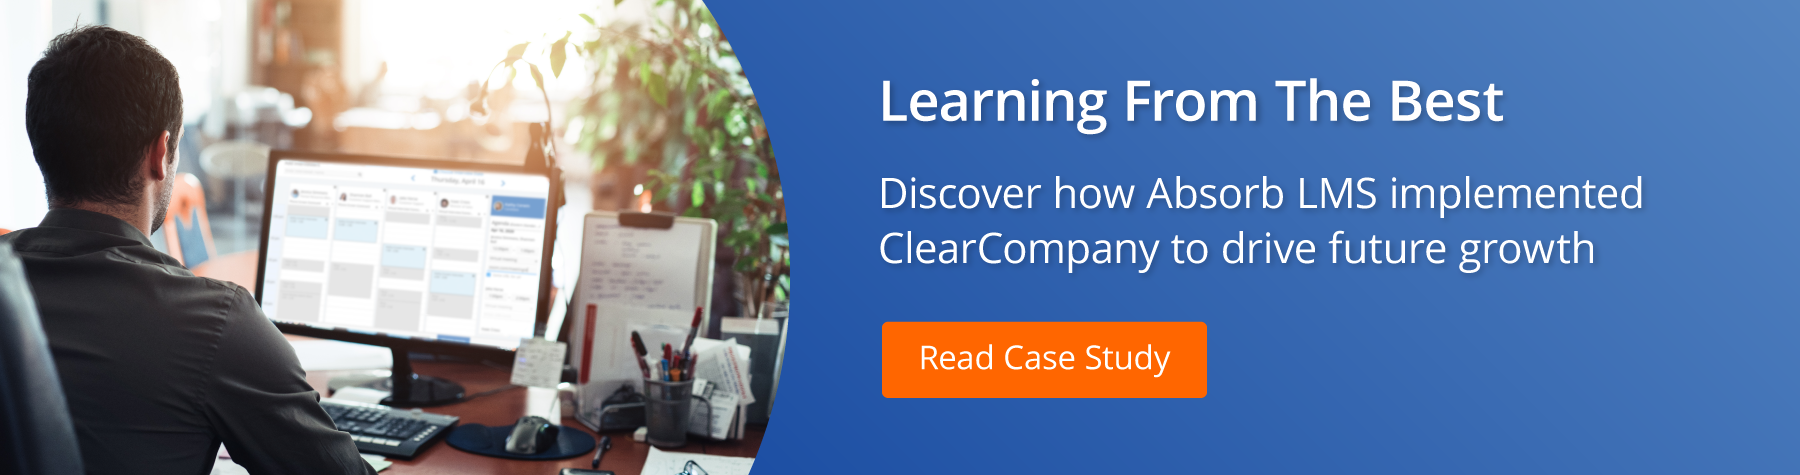 Absorb LMS ClearCompany Case Study CTA